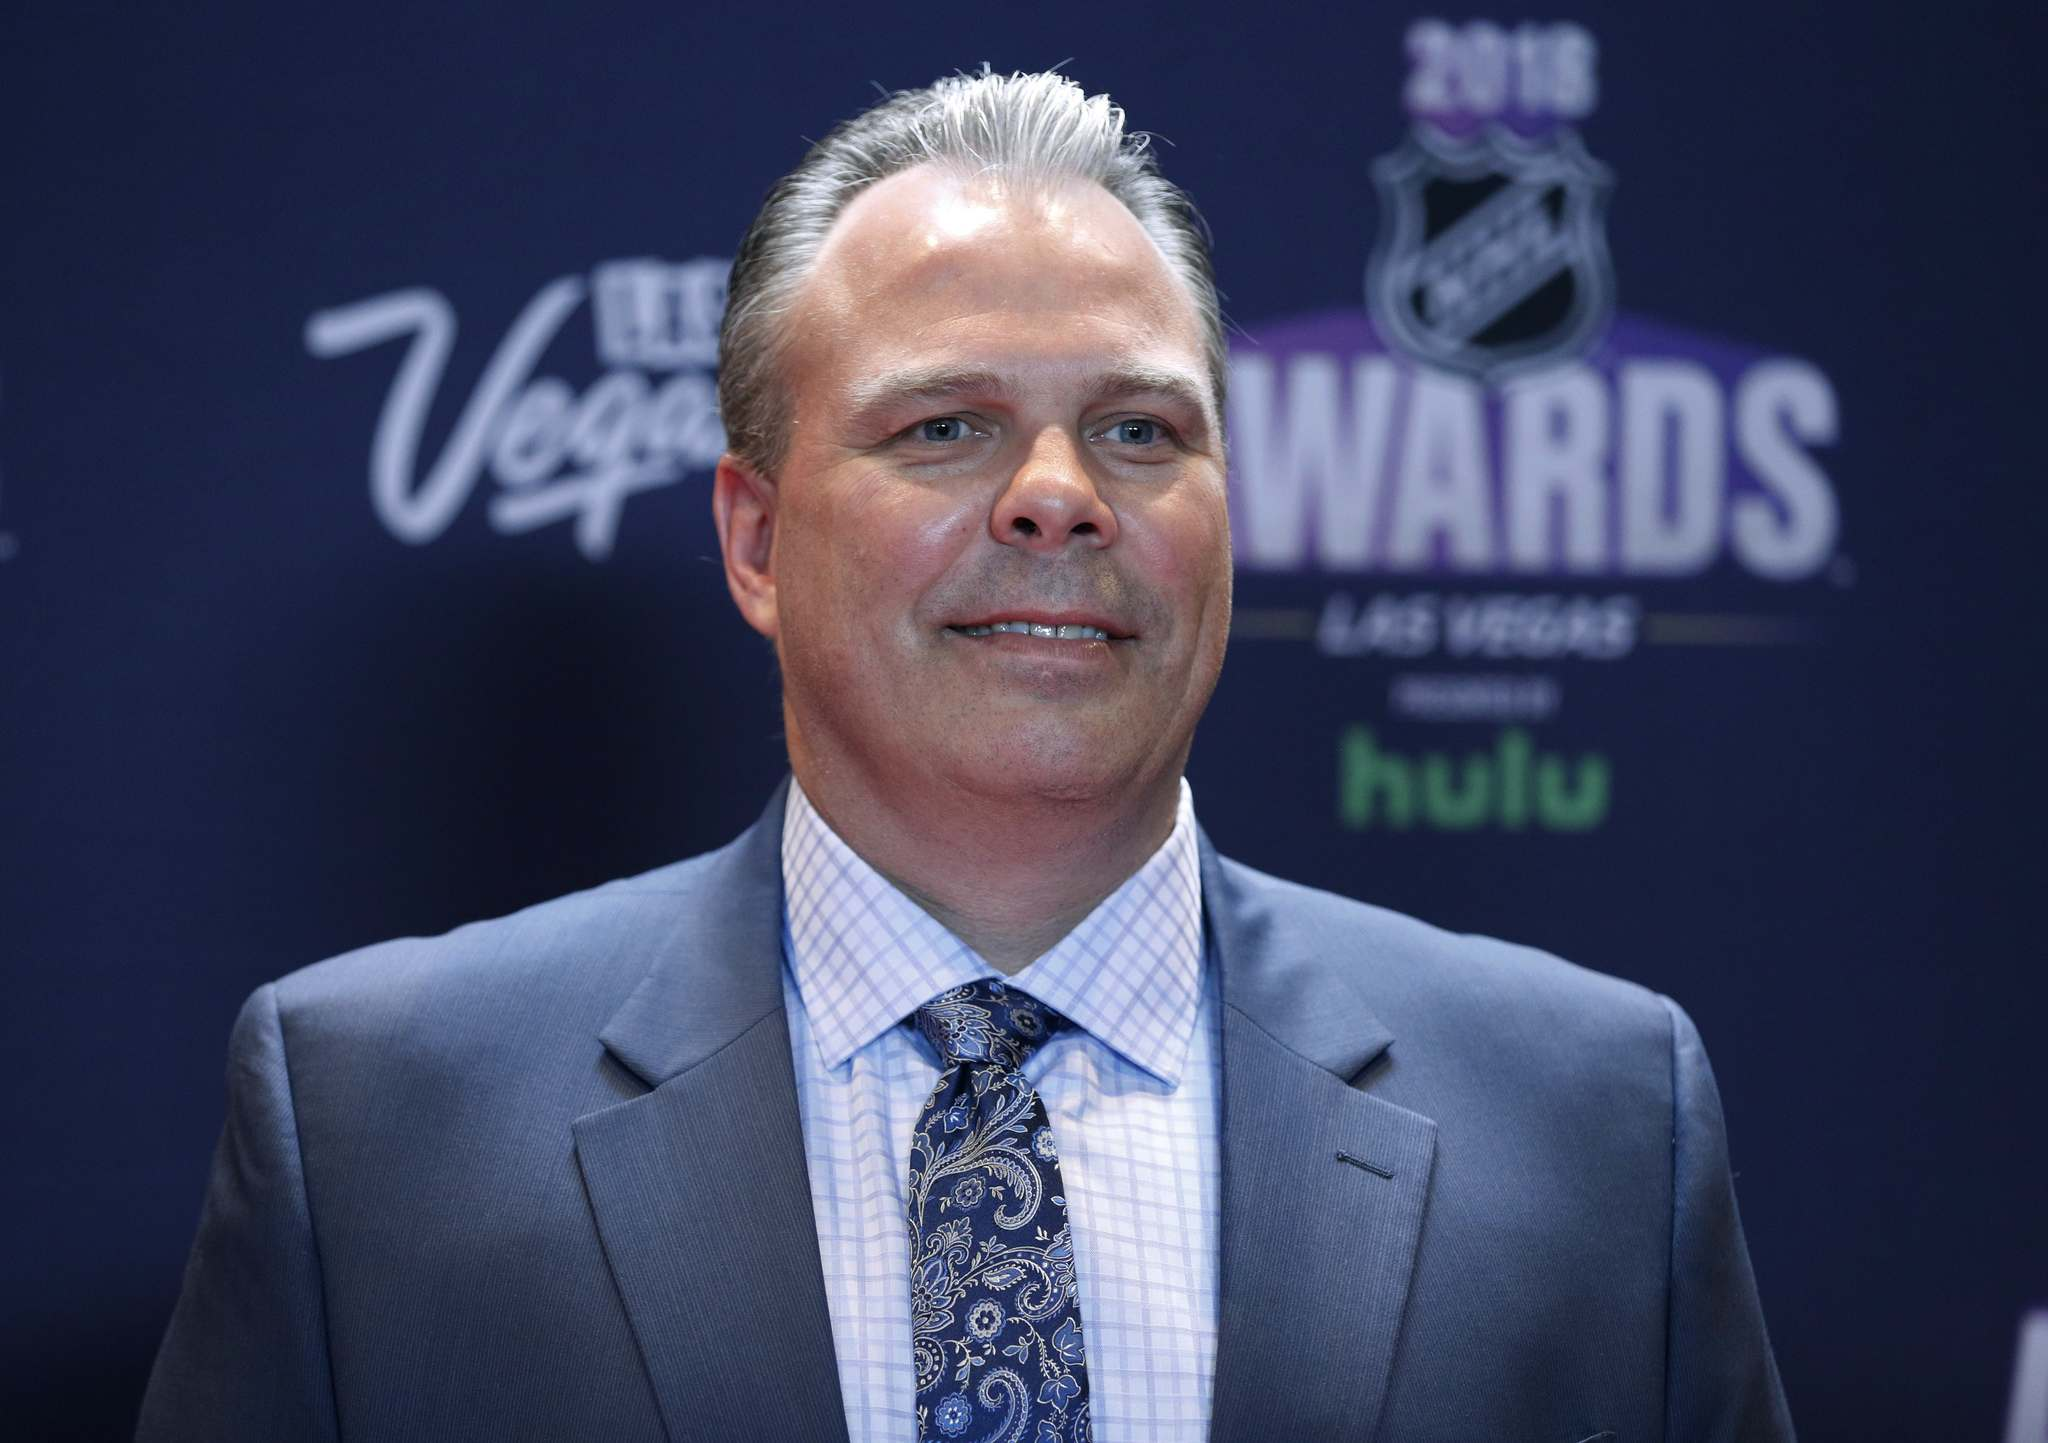 Kevin Cheveldayoff is fine with the NHL's playoff system, despite having some top-tiered teams playing each other in early rounds. (John Locher / The Associated Press files)</p>